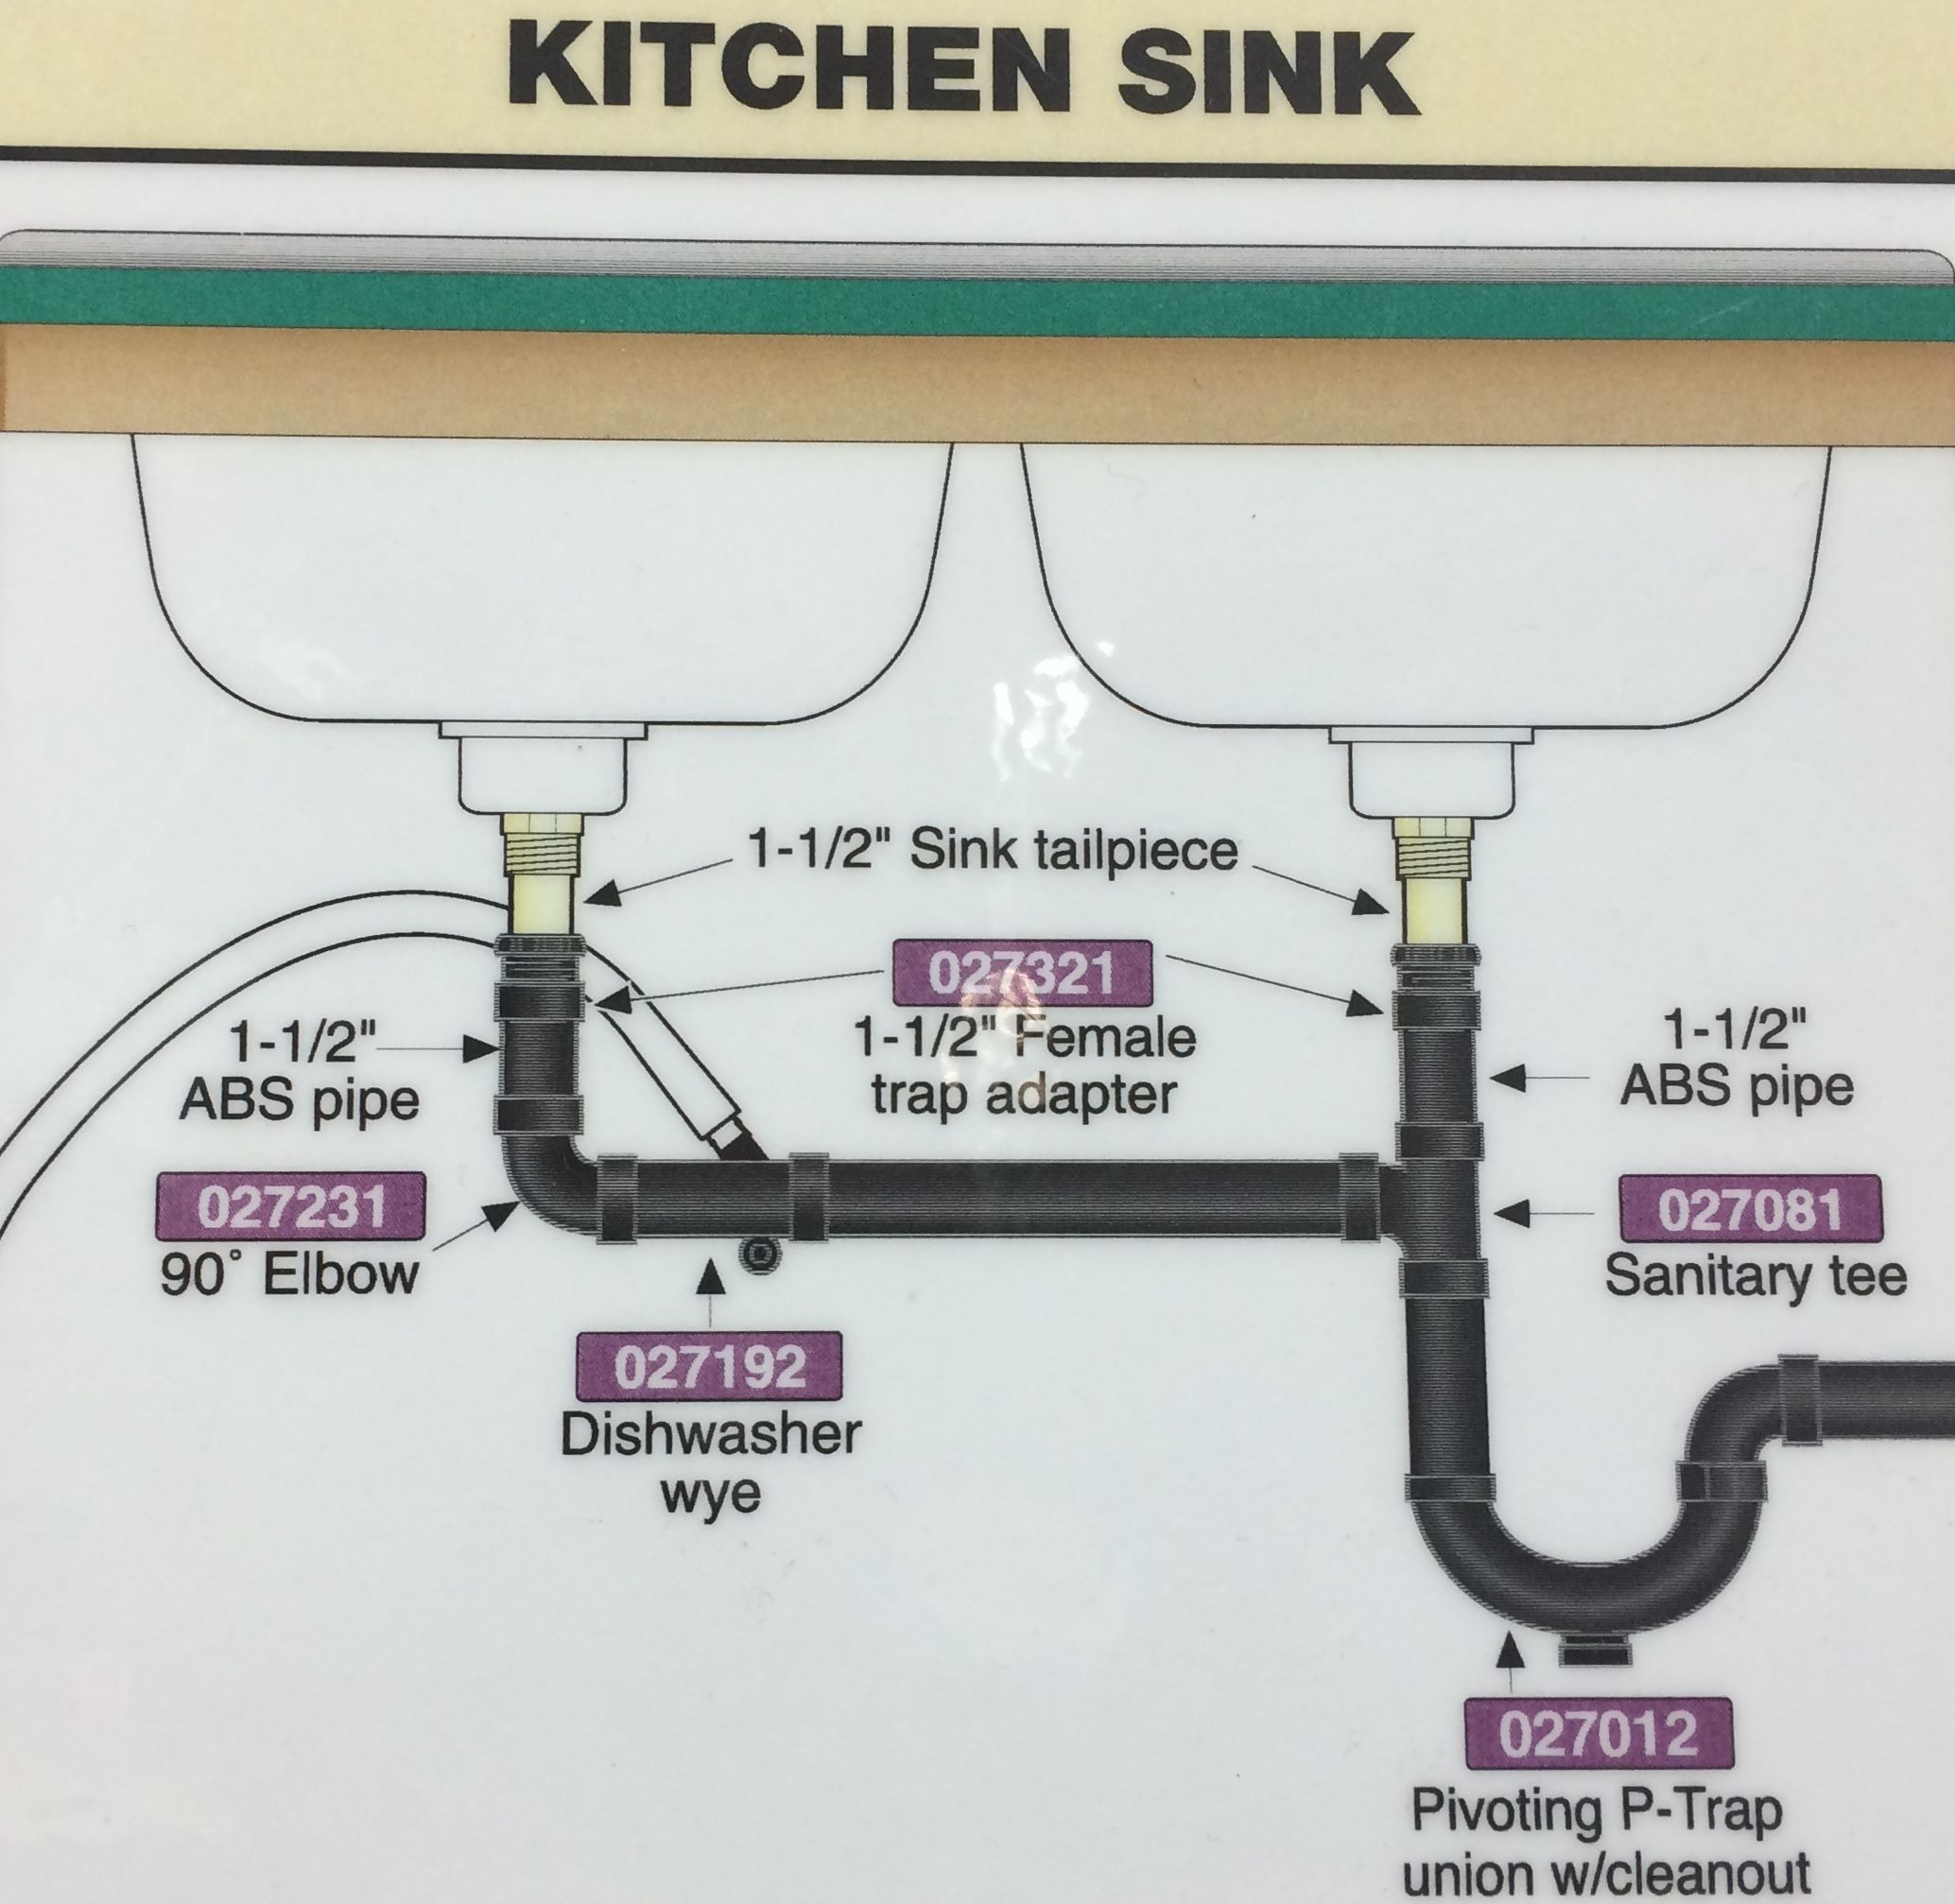 Double kitchen sink plumbing with dishwasher plumbing in - How to clean bathroom sink drain ...